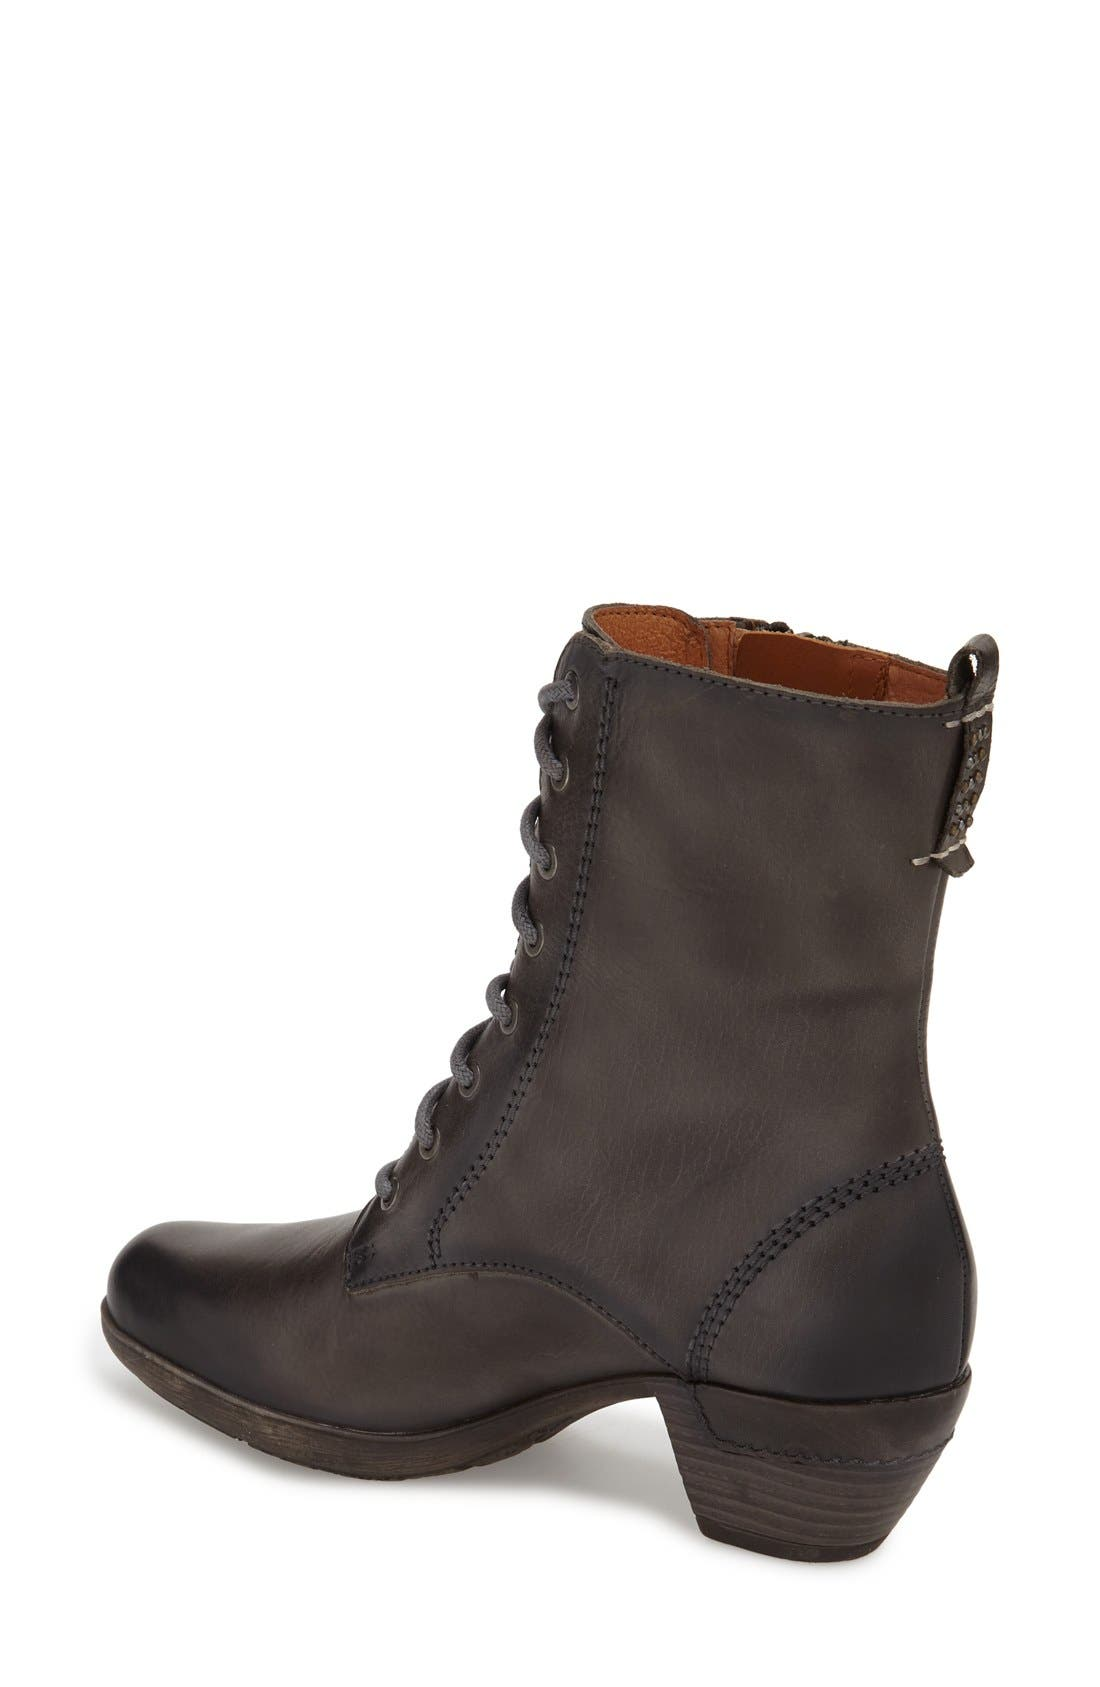 'Rotterdam' Lace-Up Boot,                             Alternate thumbnail 2, color,                             Lead Leather